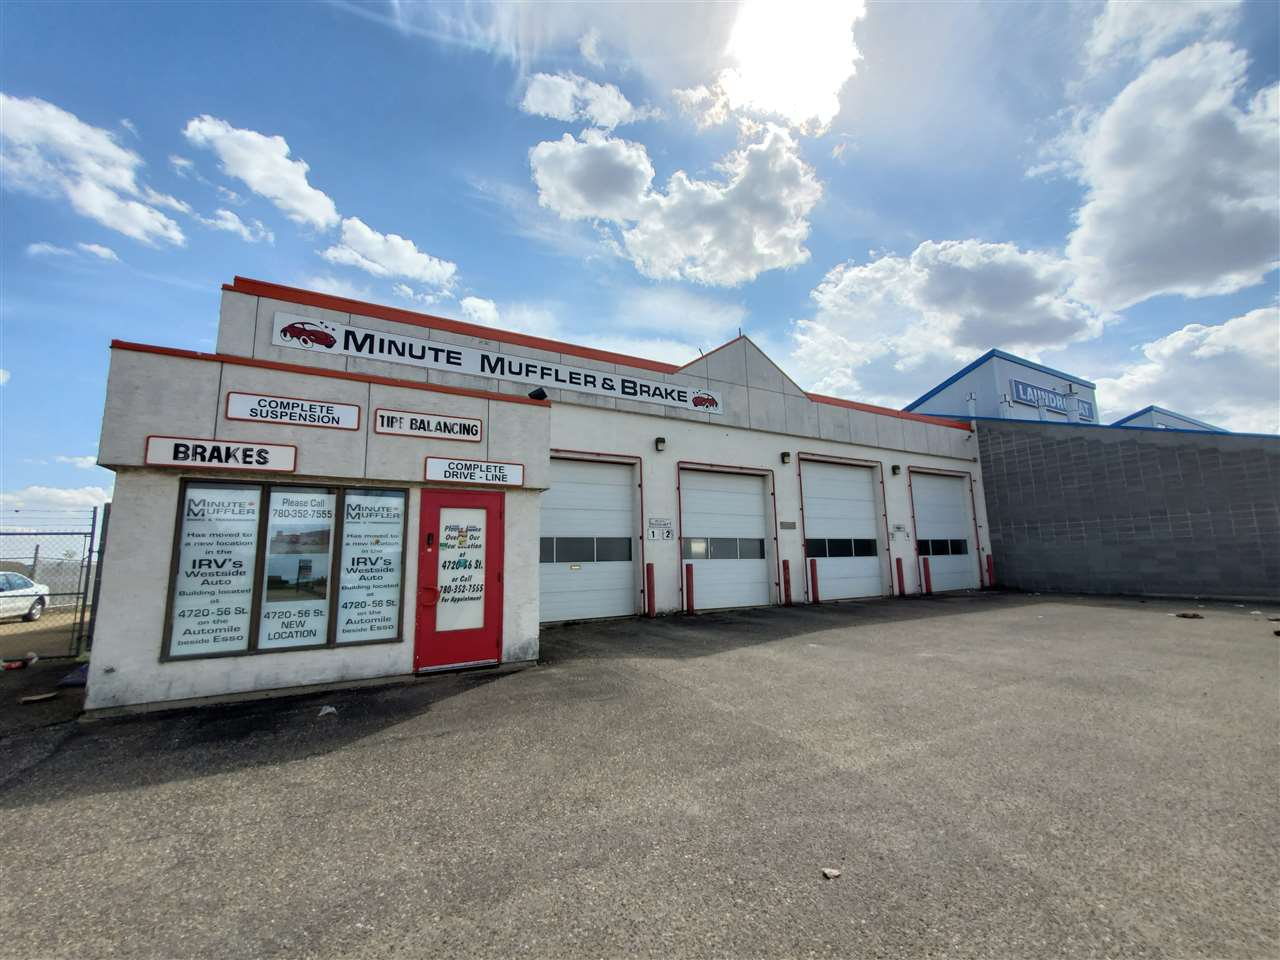 Main Photo: 5417 36 Avenue: Wetaskiwin Retail for sale : MLS®# E4193346